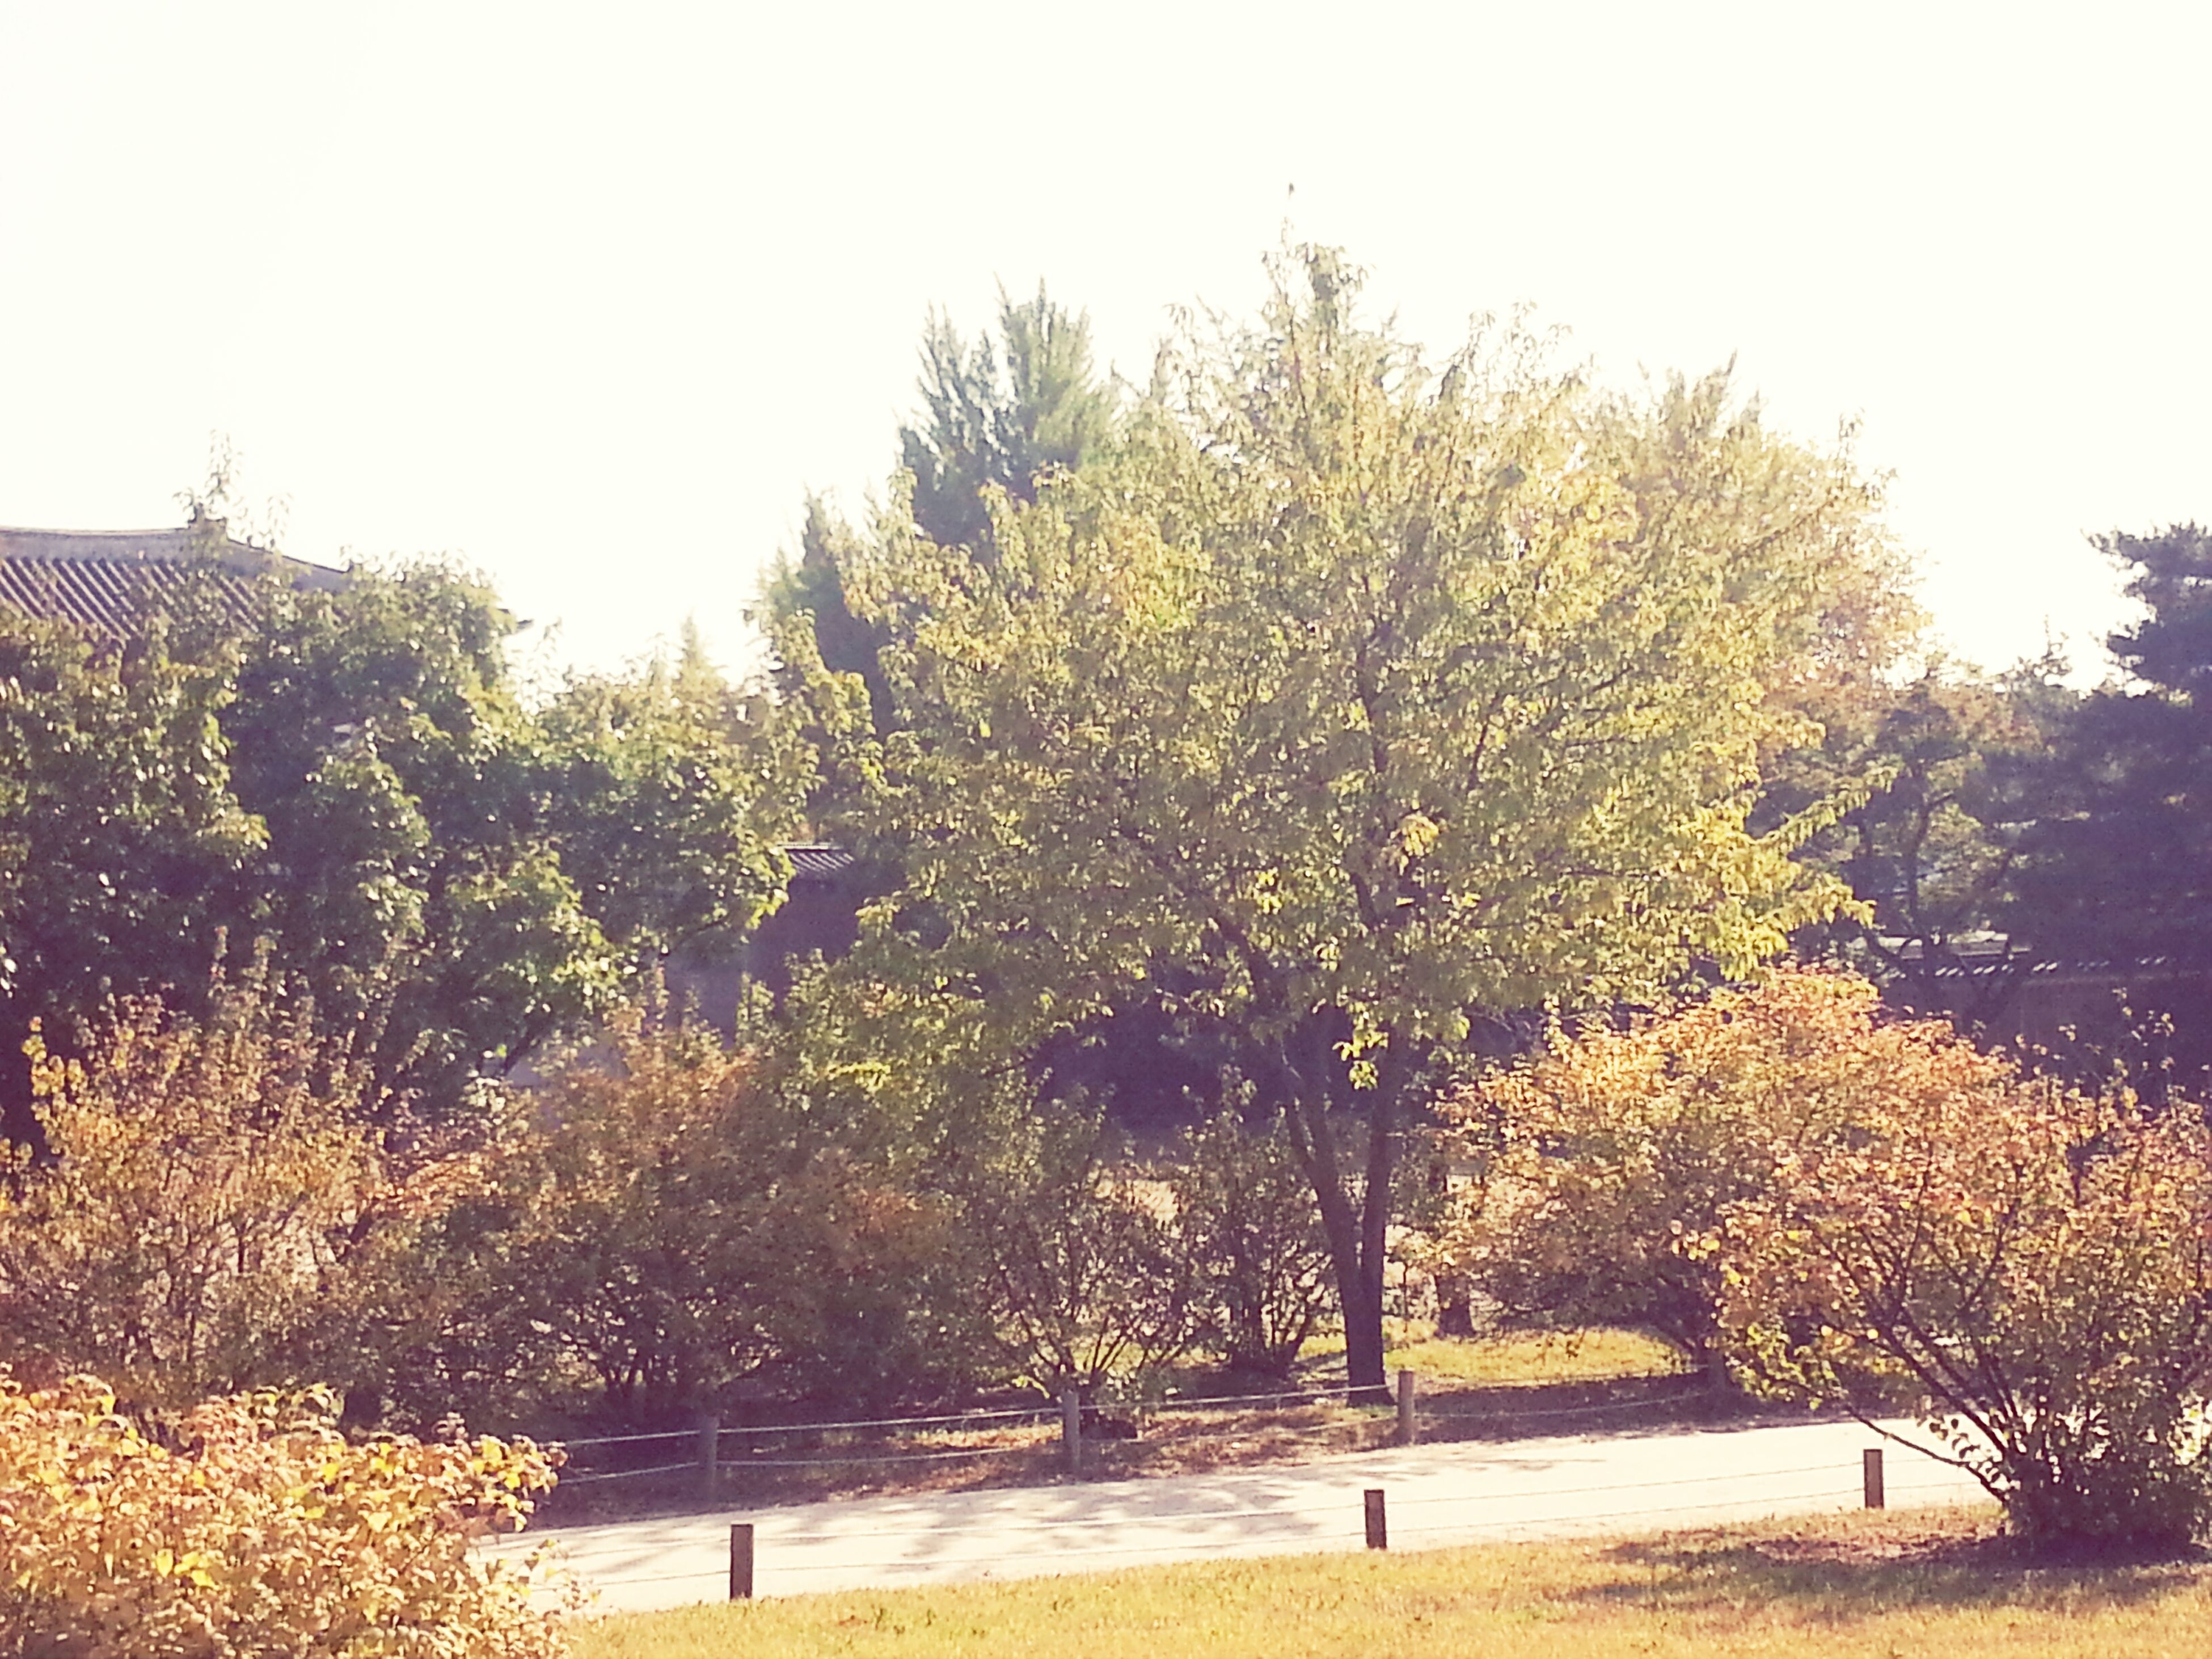 tree, growth, clear sky, tranquility, tranquil scene, nature, beauty in nature, branch, season, autumn, scenics, sky, field, growing, change, day, plant, park - man made space, outdoors, sunlight